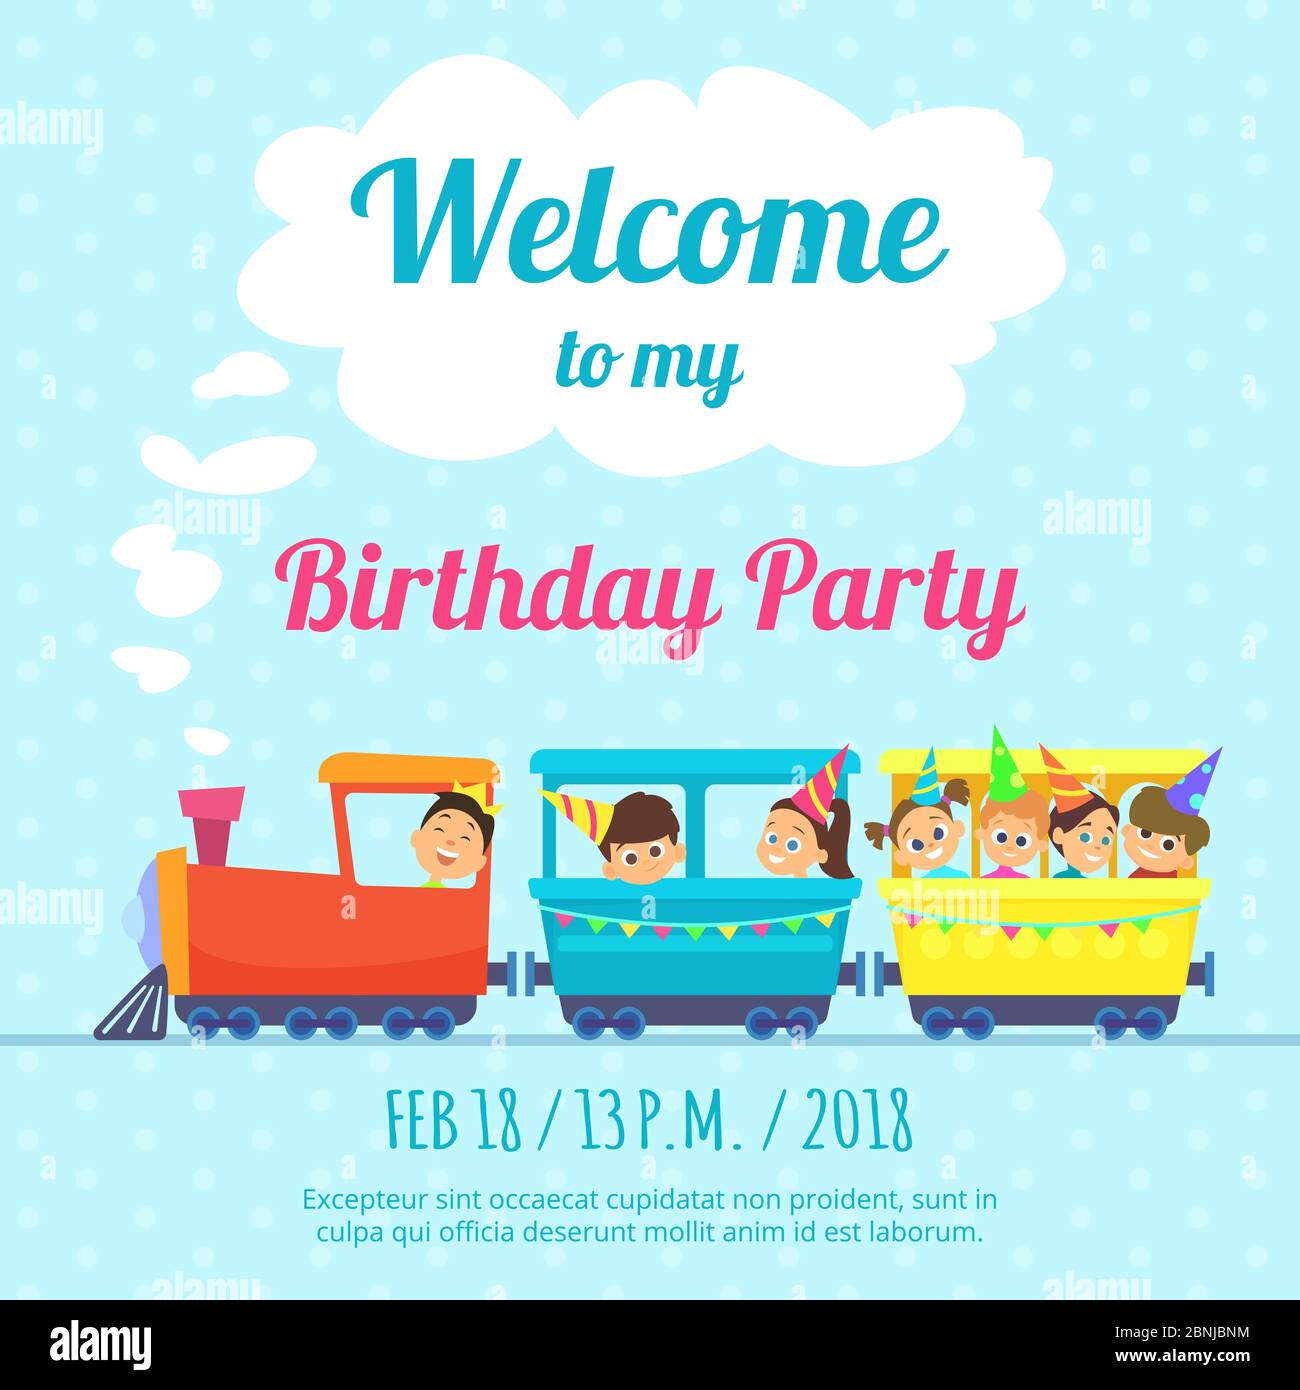 https www alamy com design template of poster for kids party invitation illustration of train toys image357519504 html